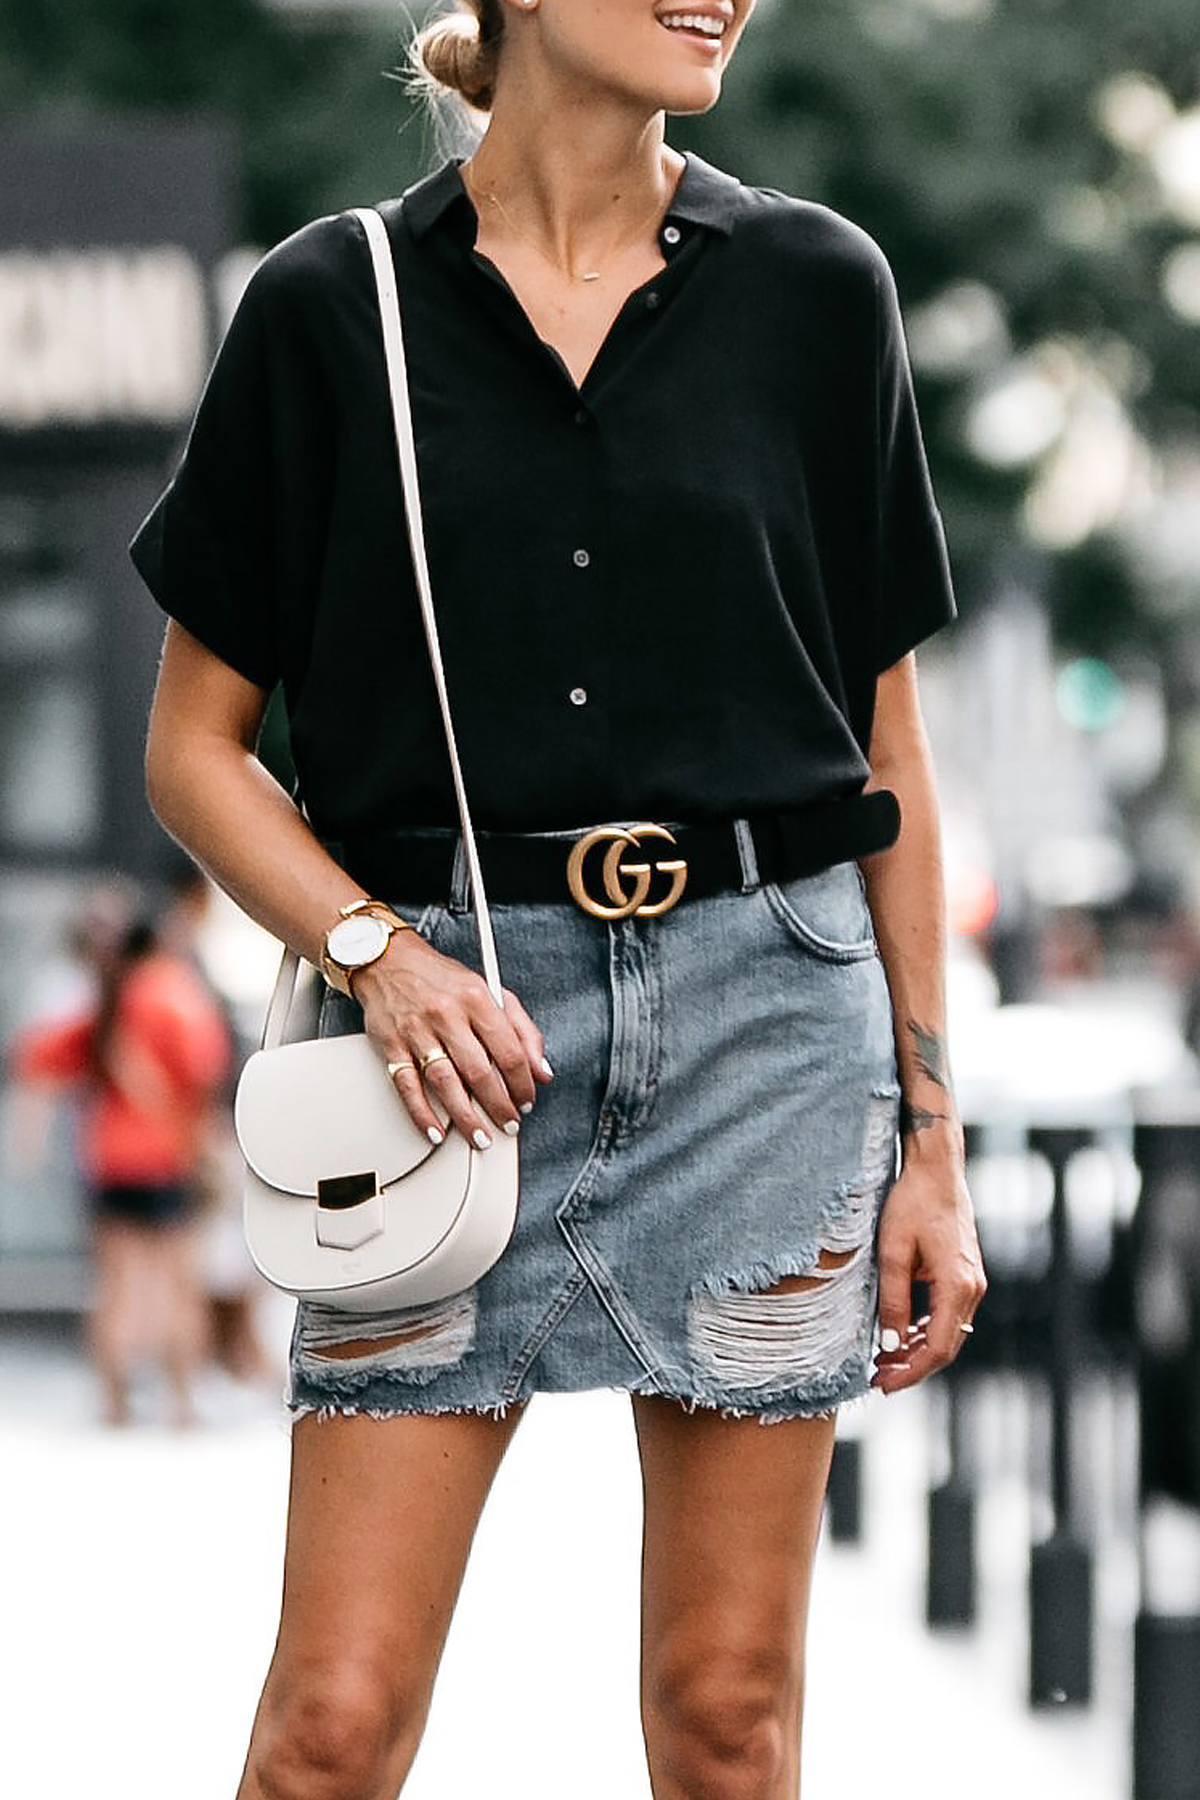 861b1180e47 Everlane Black Short Sleeve Shirt Topshop Ripped Denim Skirt Outfit Gucci  Marmont Belt Celine Trotteur White